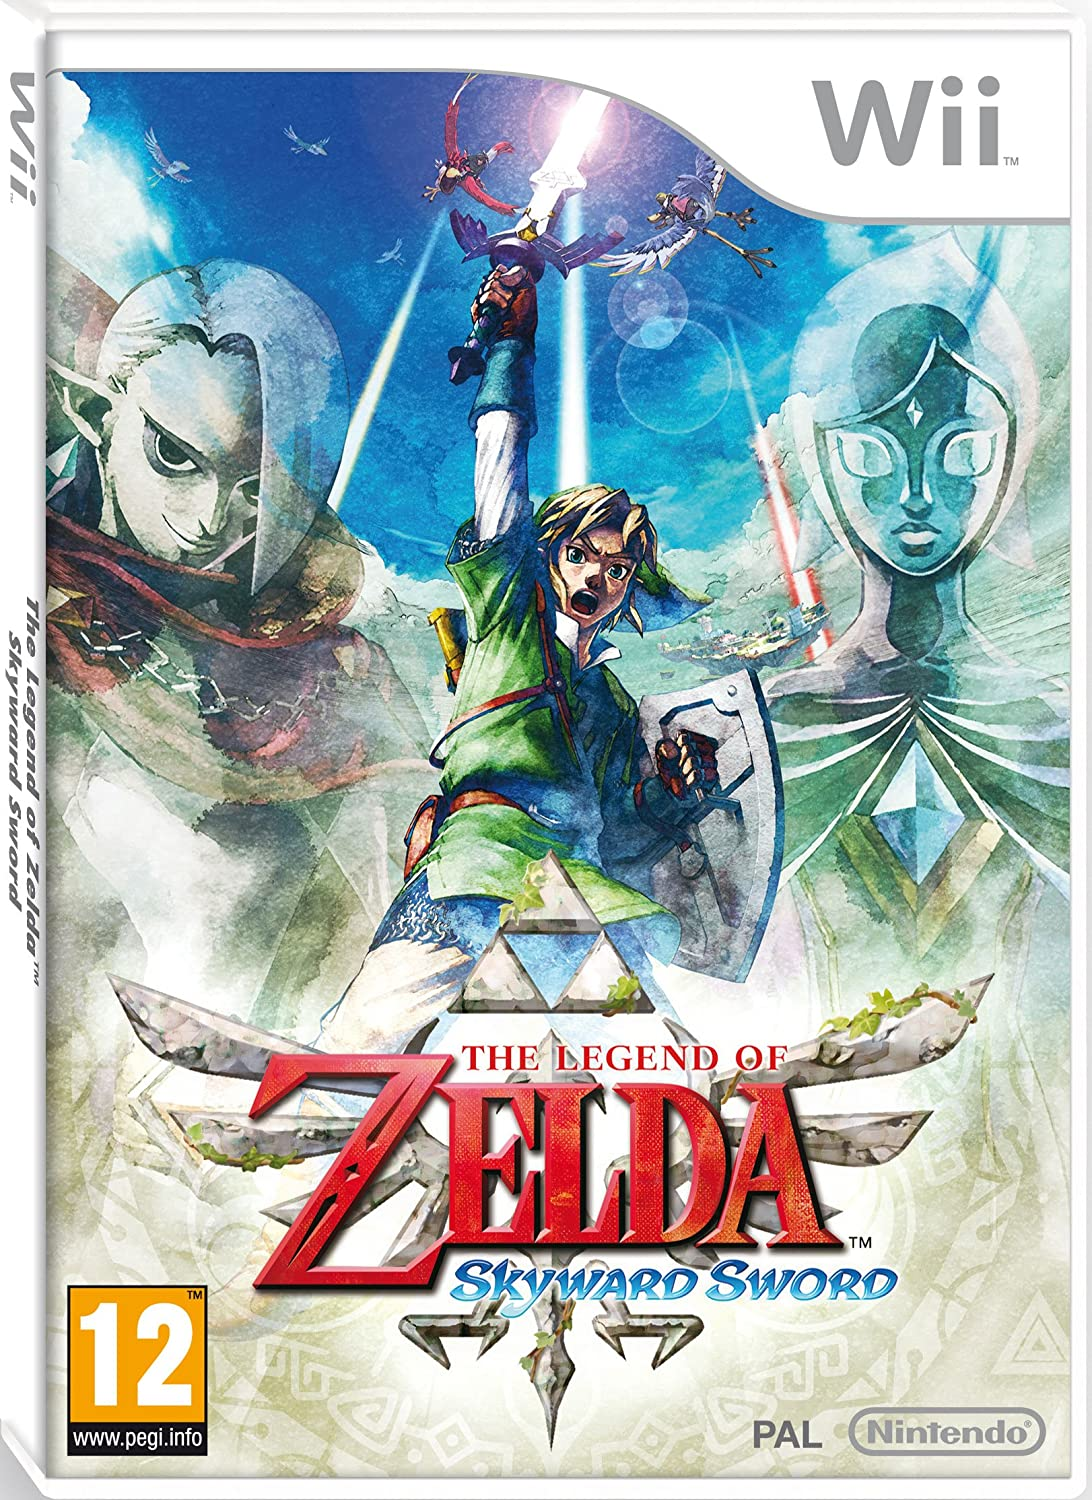 The Legend of Zelda Skyward Sword - Wii |